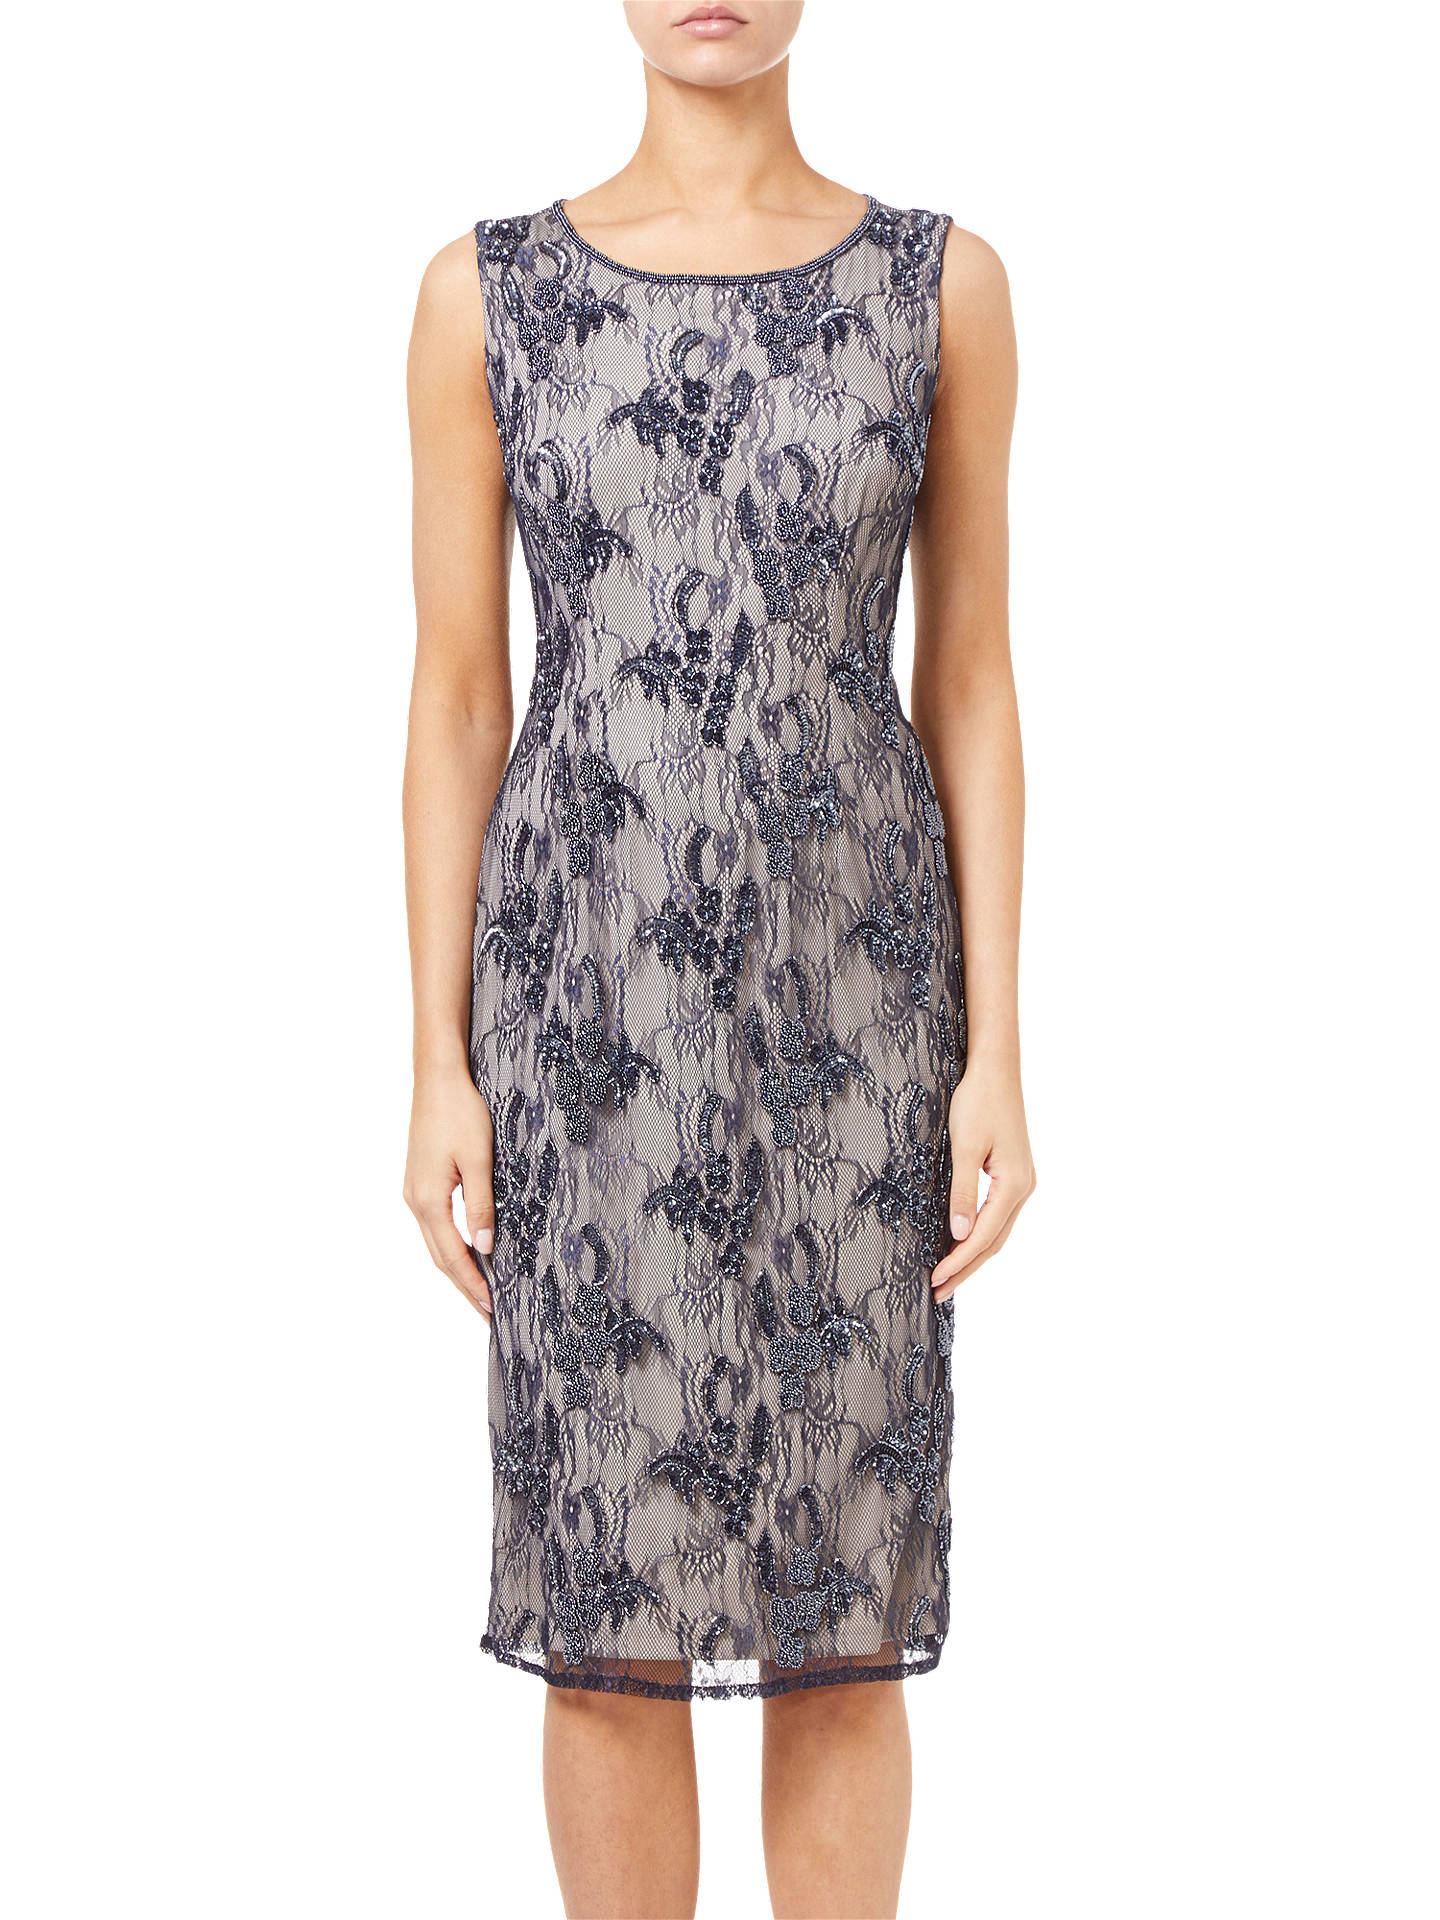 BuyAdrianna Papell Beaded Lace Midi Dress, Midnight/Silver, 8 Online at johnlewis.com